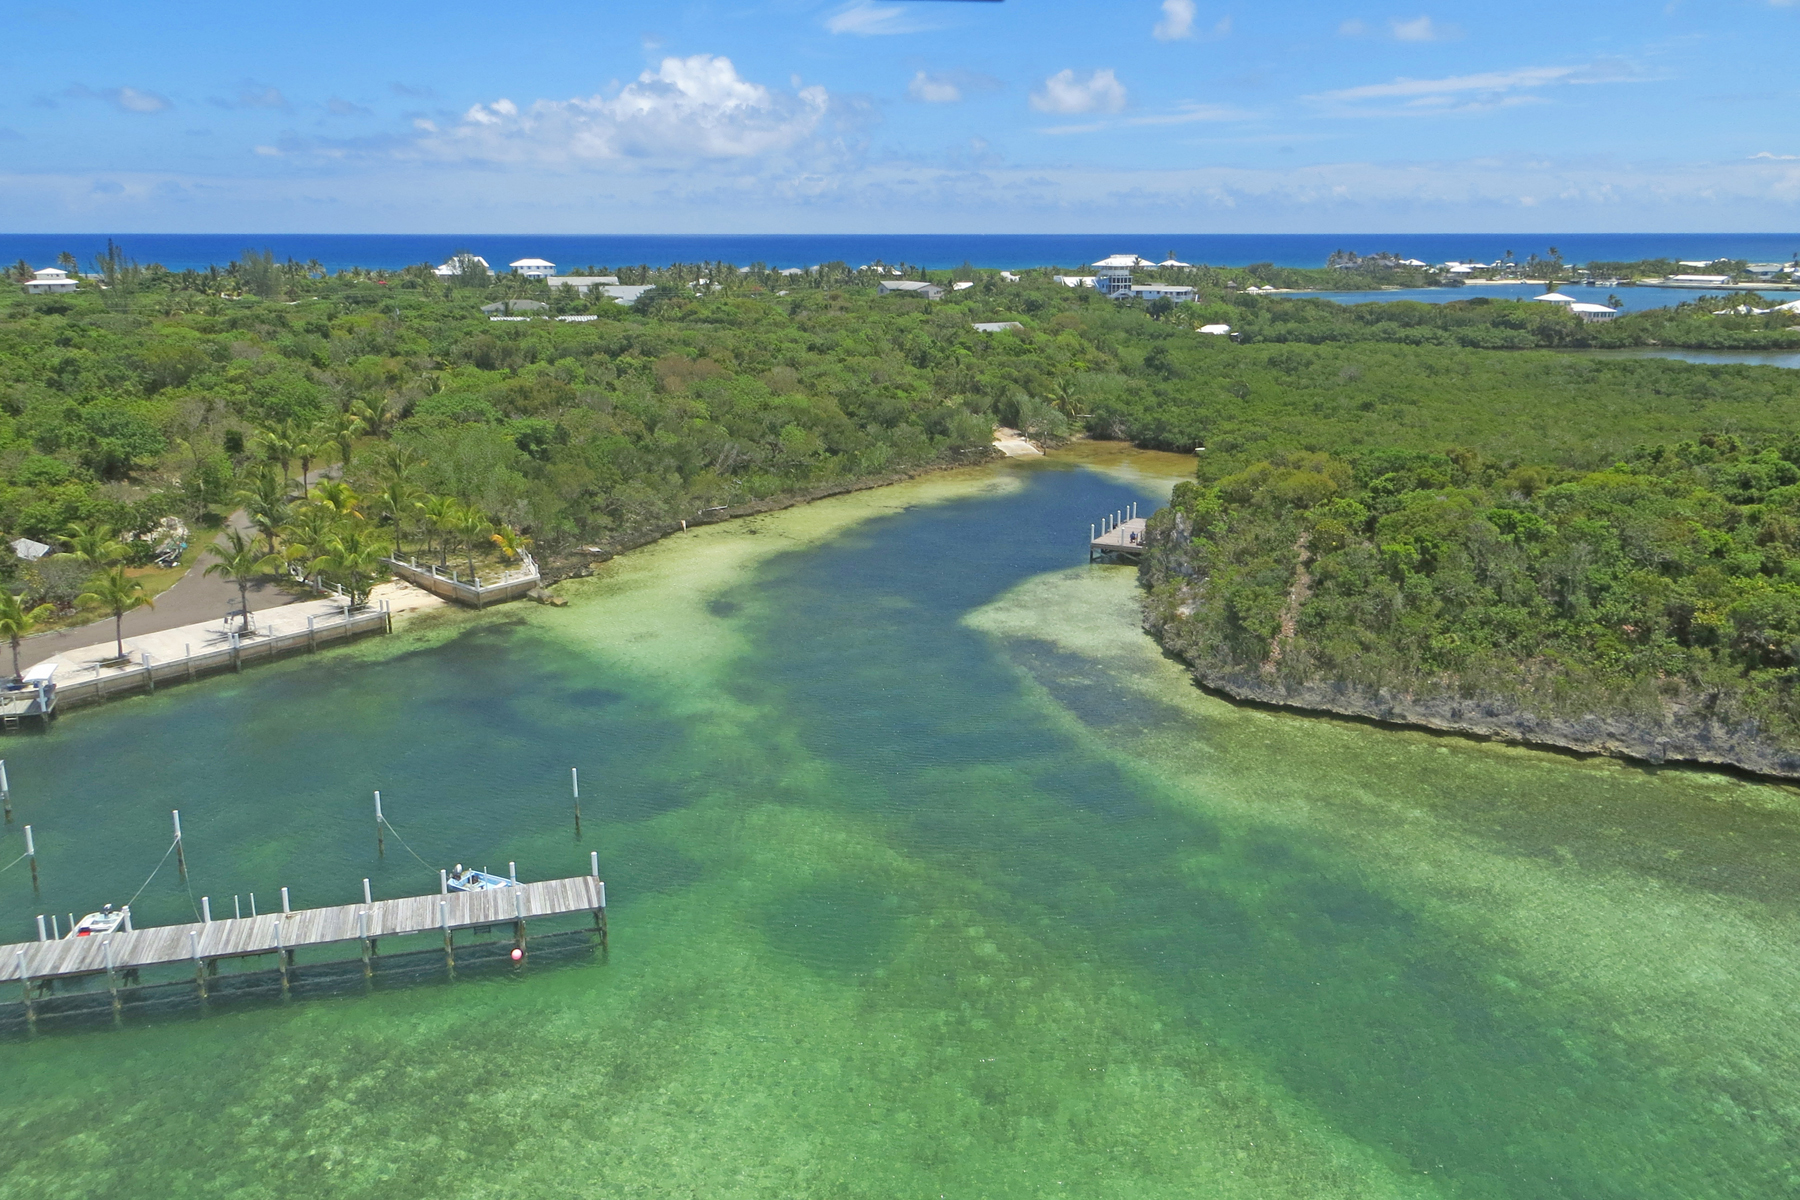 Land for Sale at Centreline Road Parcel Elbow Cay Hope Town, Abaco Bahamas